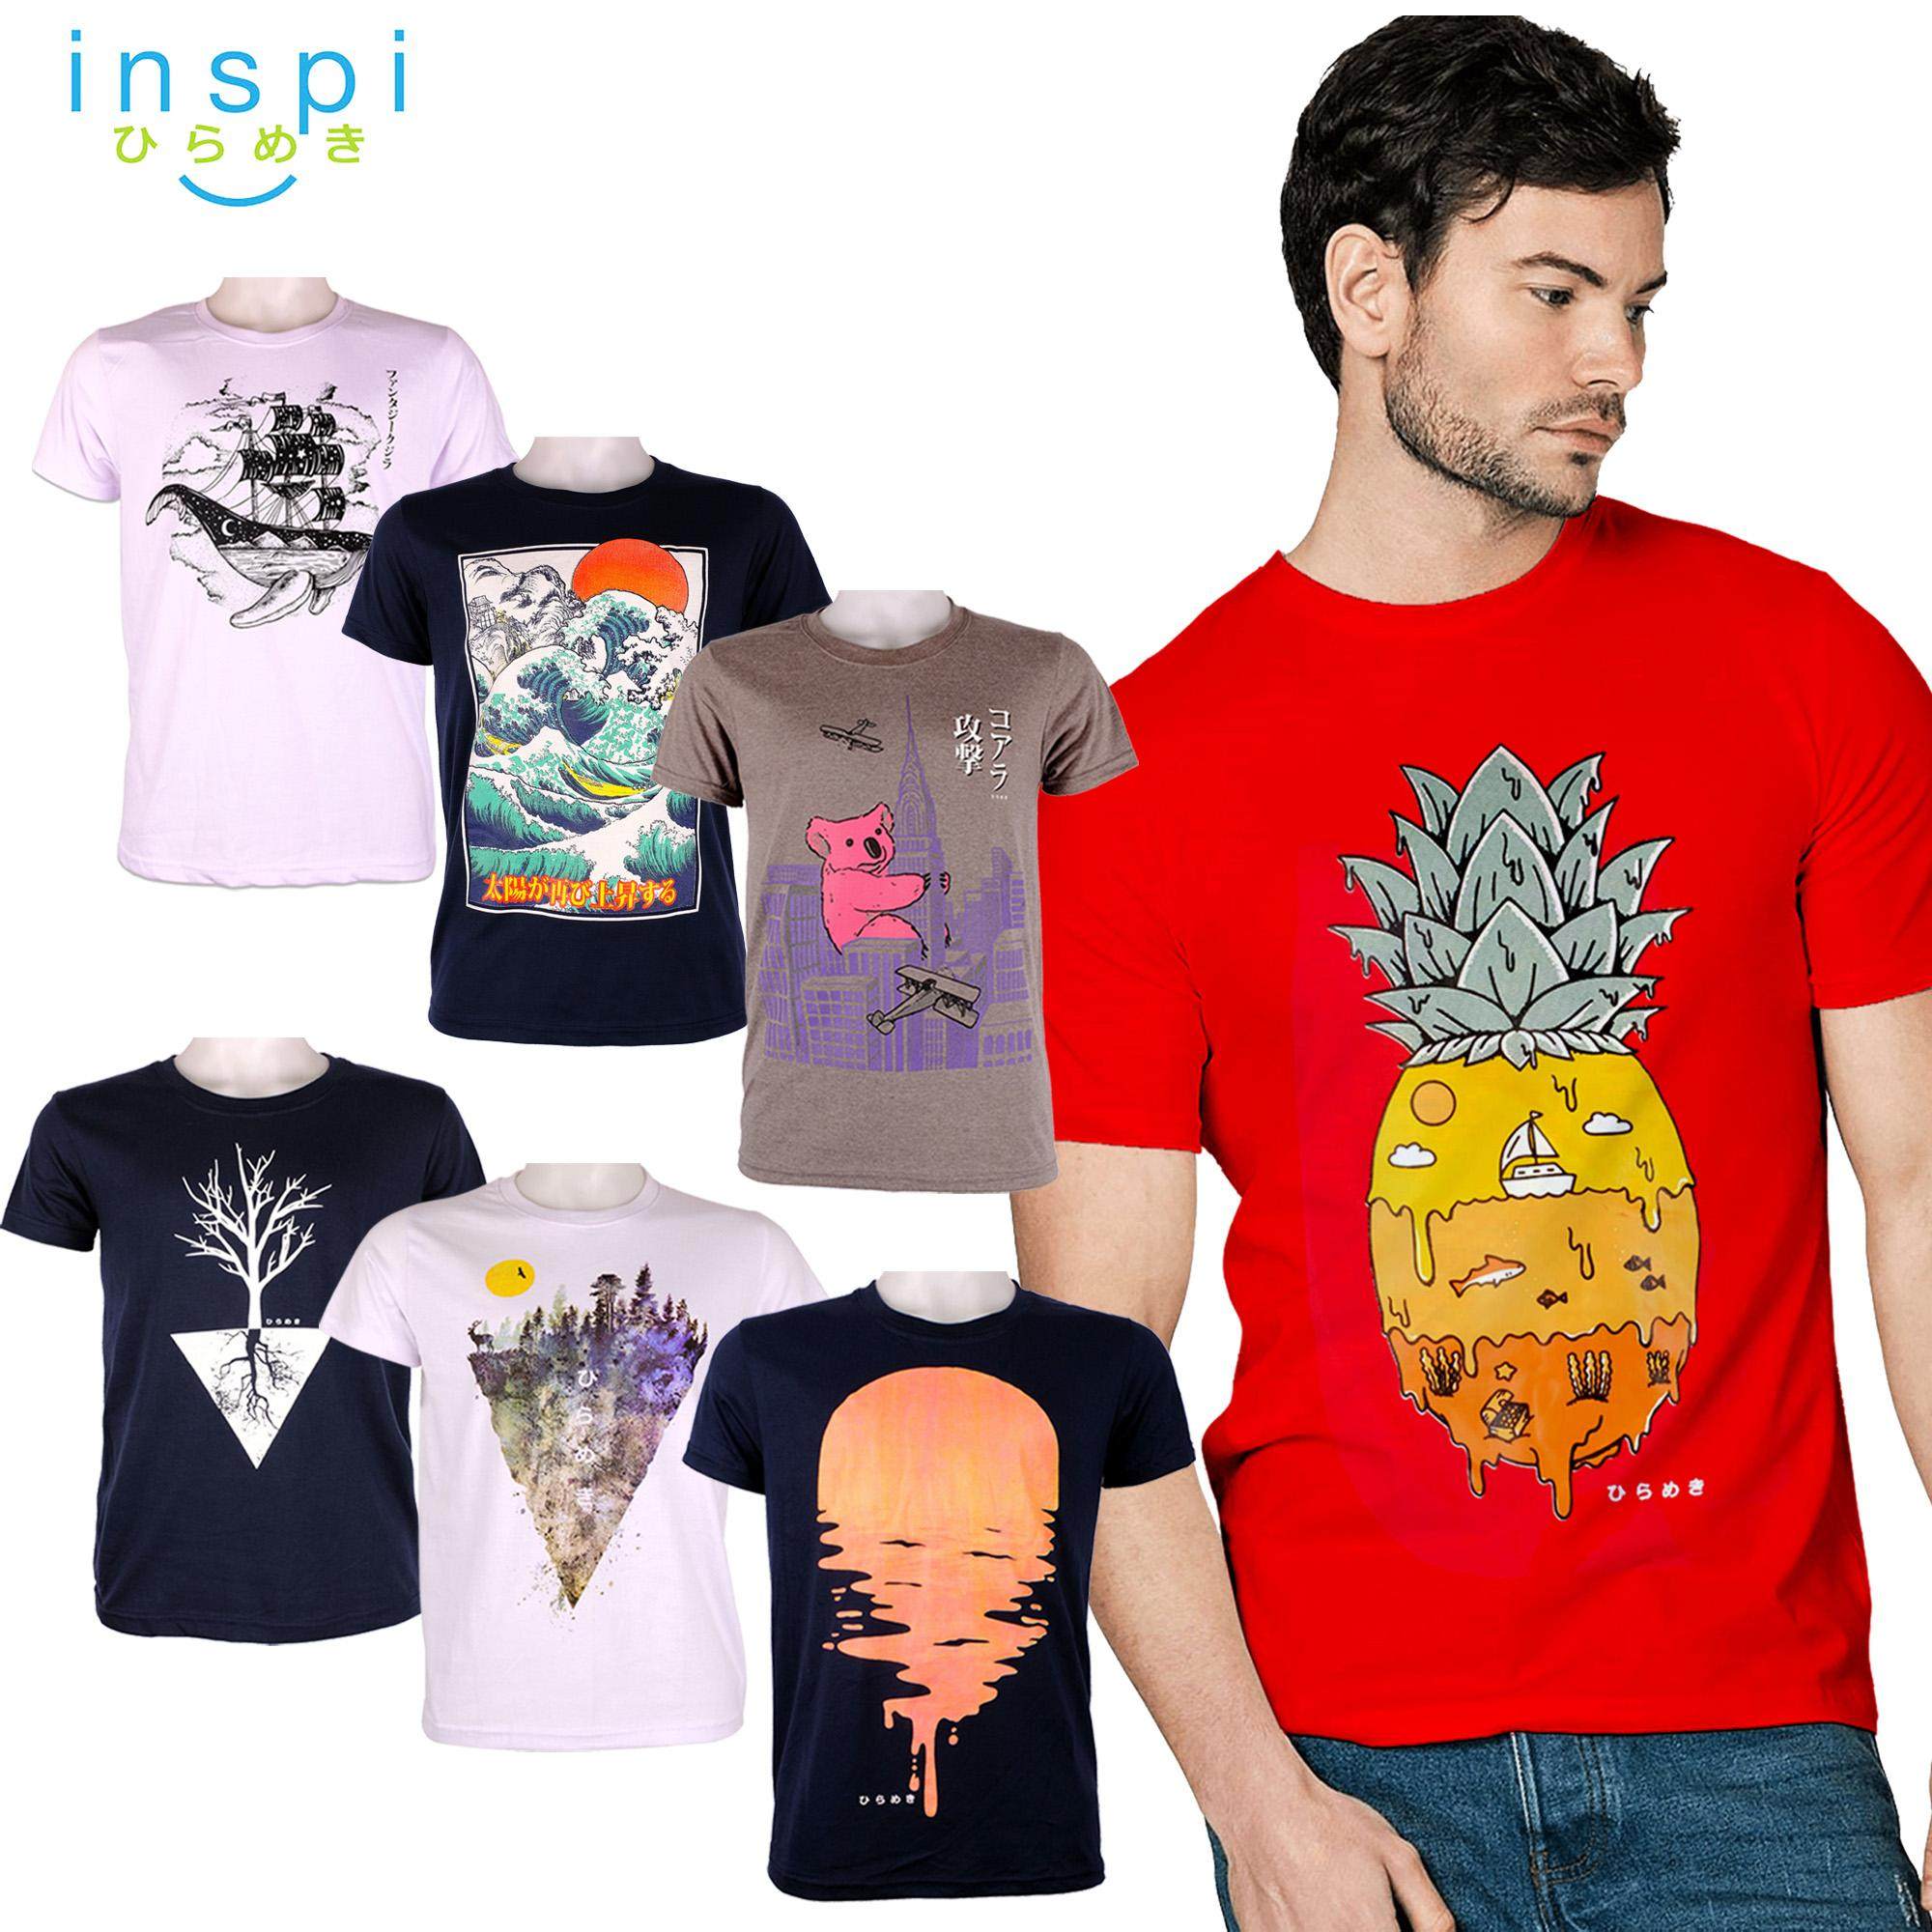 3c218c19d3fa INSPI Tees Nature Collection tshirt printed graphic tee Mens t shirt shirts  for men tshirts sale